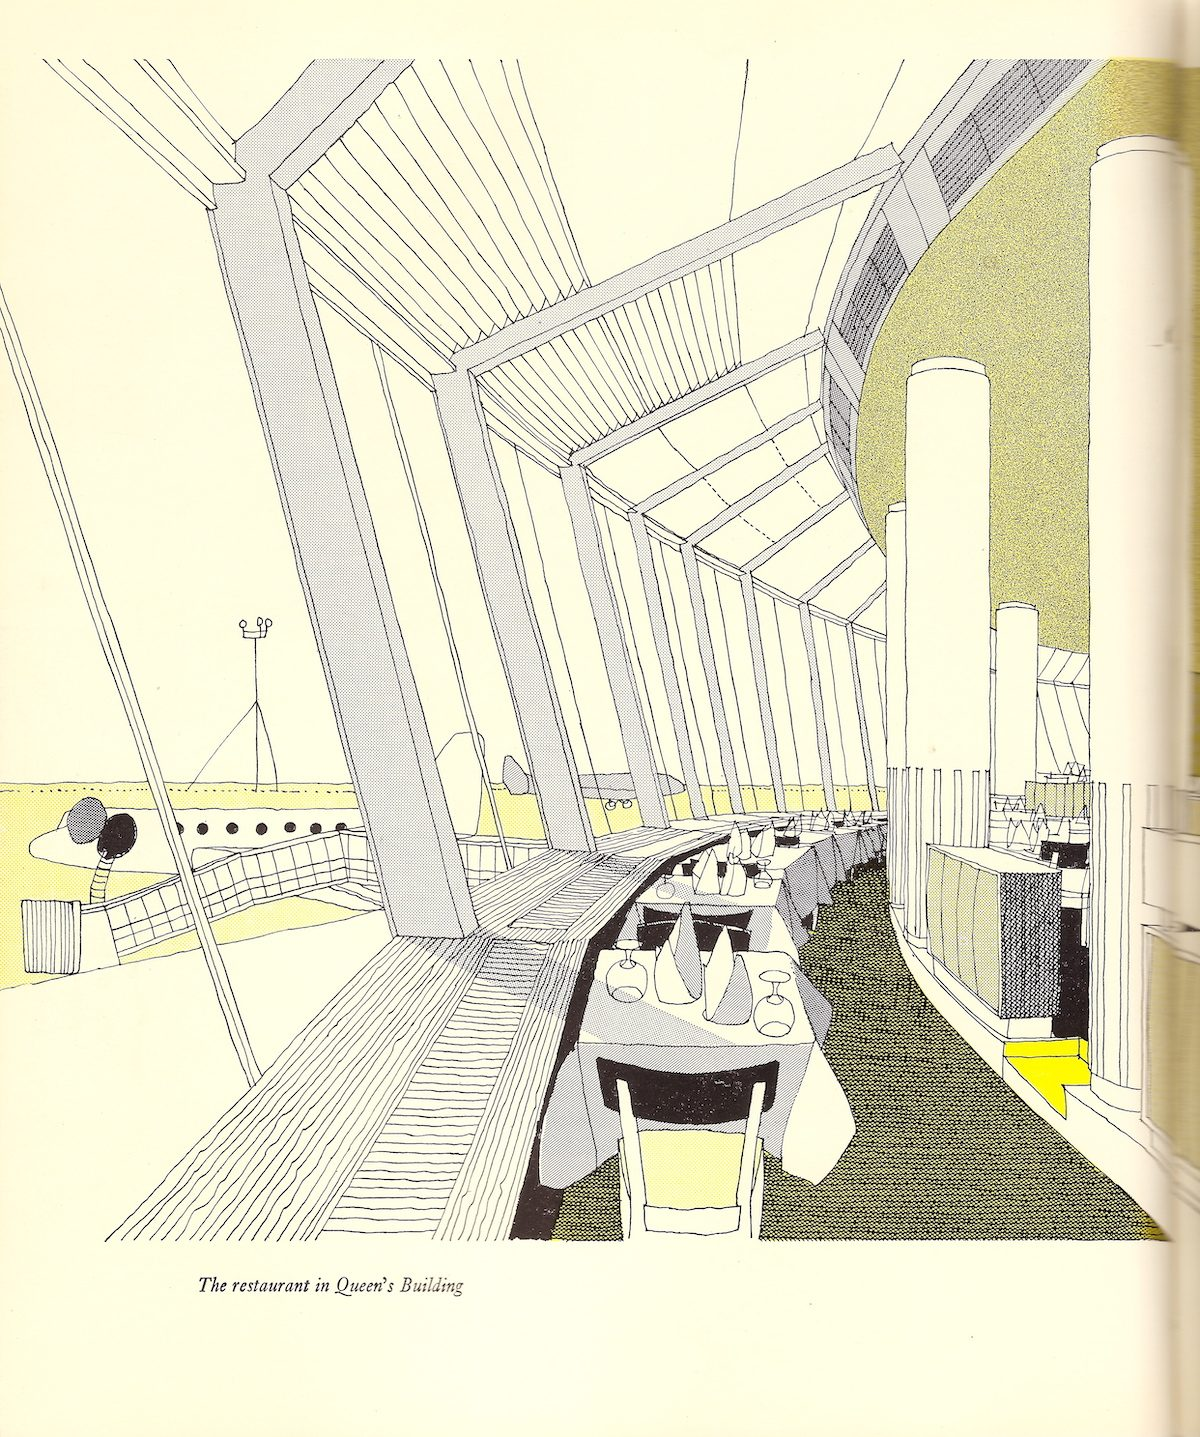 The Queen's Building restaurant at London Heathrow Airport - illustration by Gordon Cullen - 1956 The whole idea of the excitement and open-ness of modern airports in the 1950s is glimpsed in this illustration by Gordon Cullen.